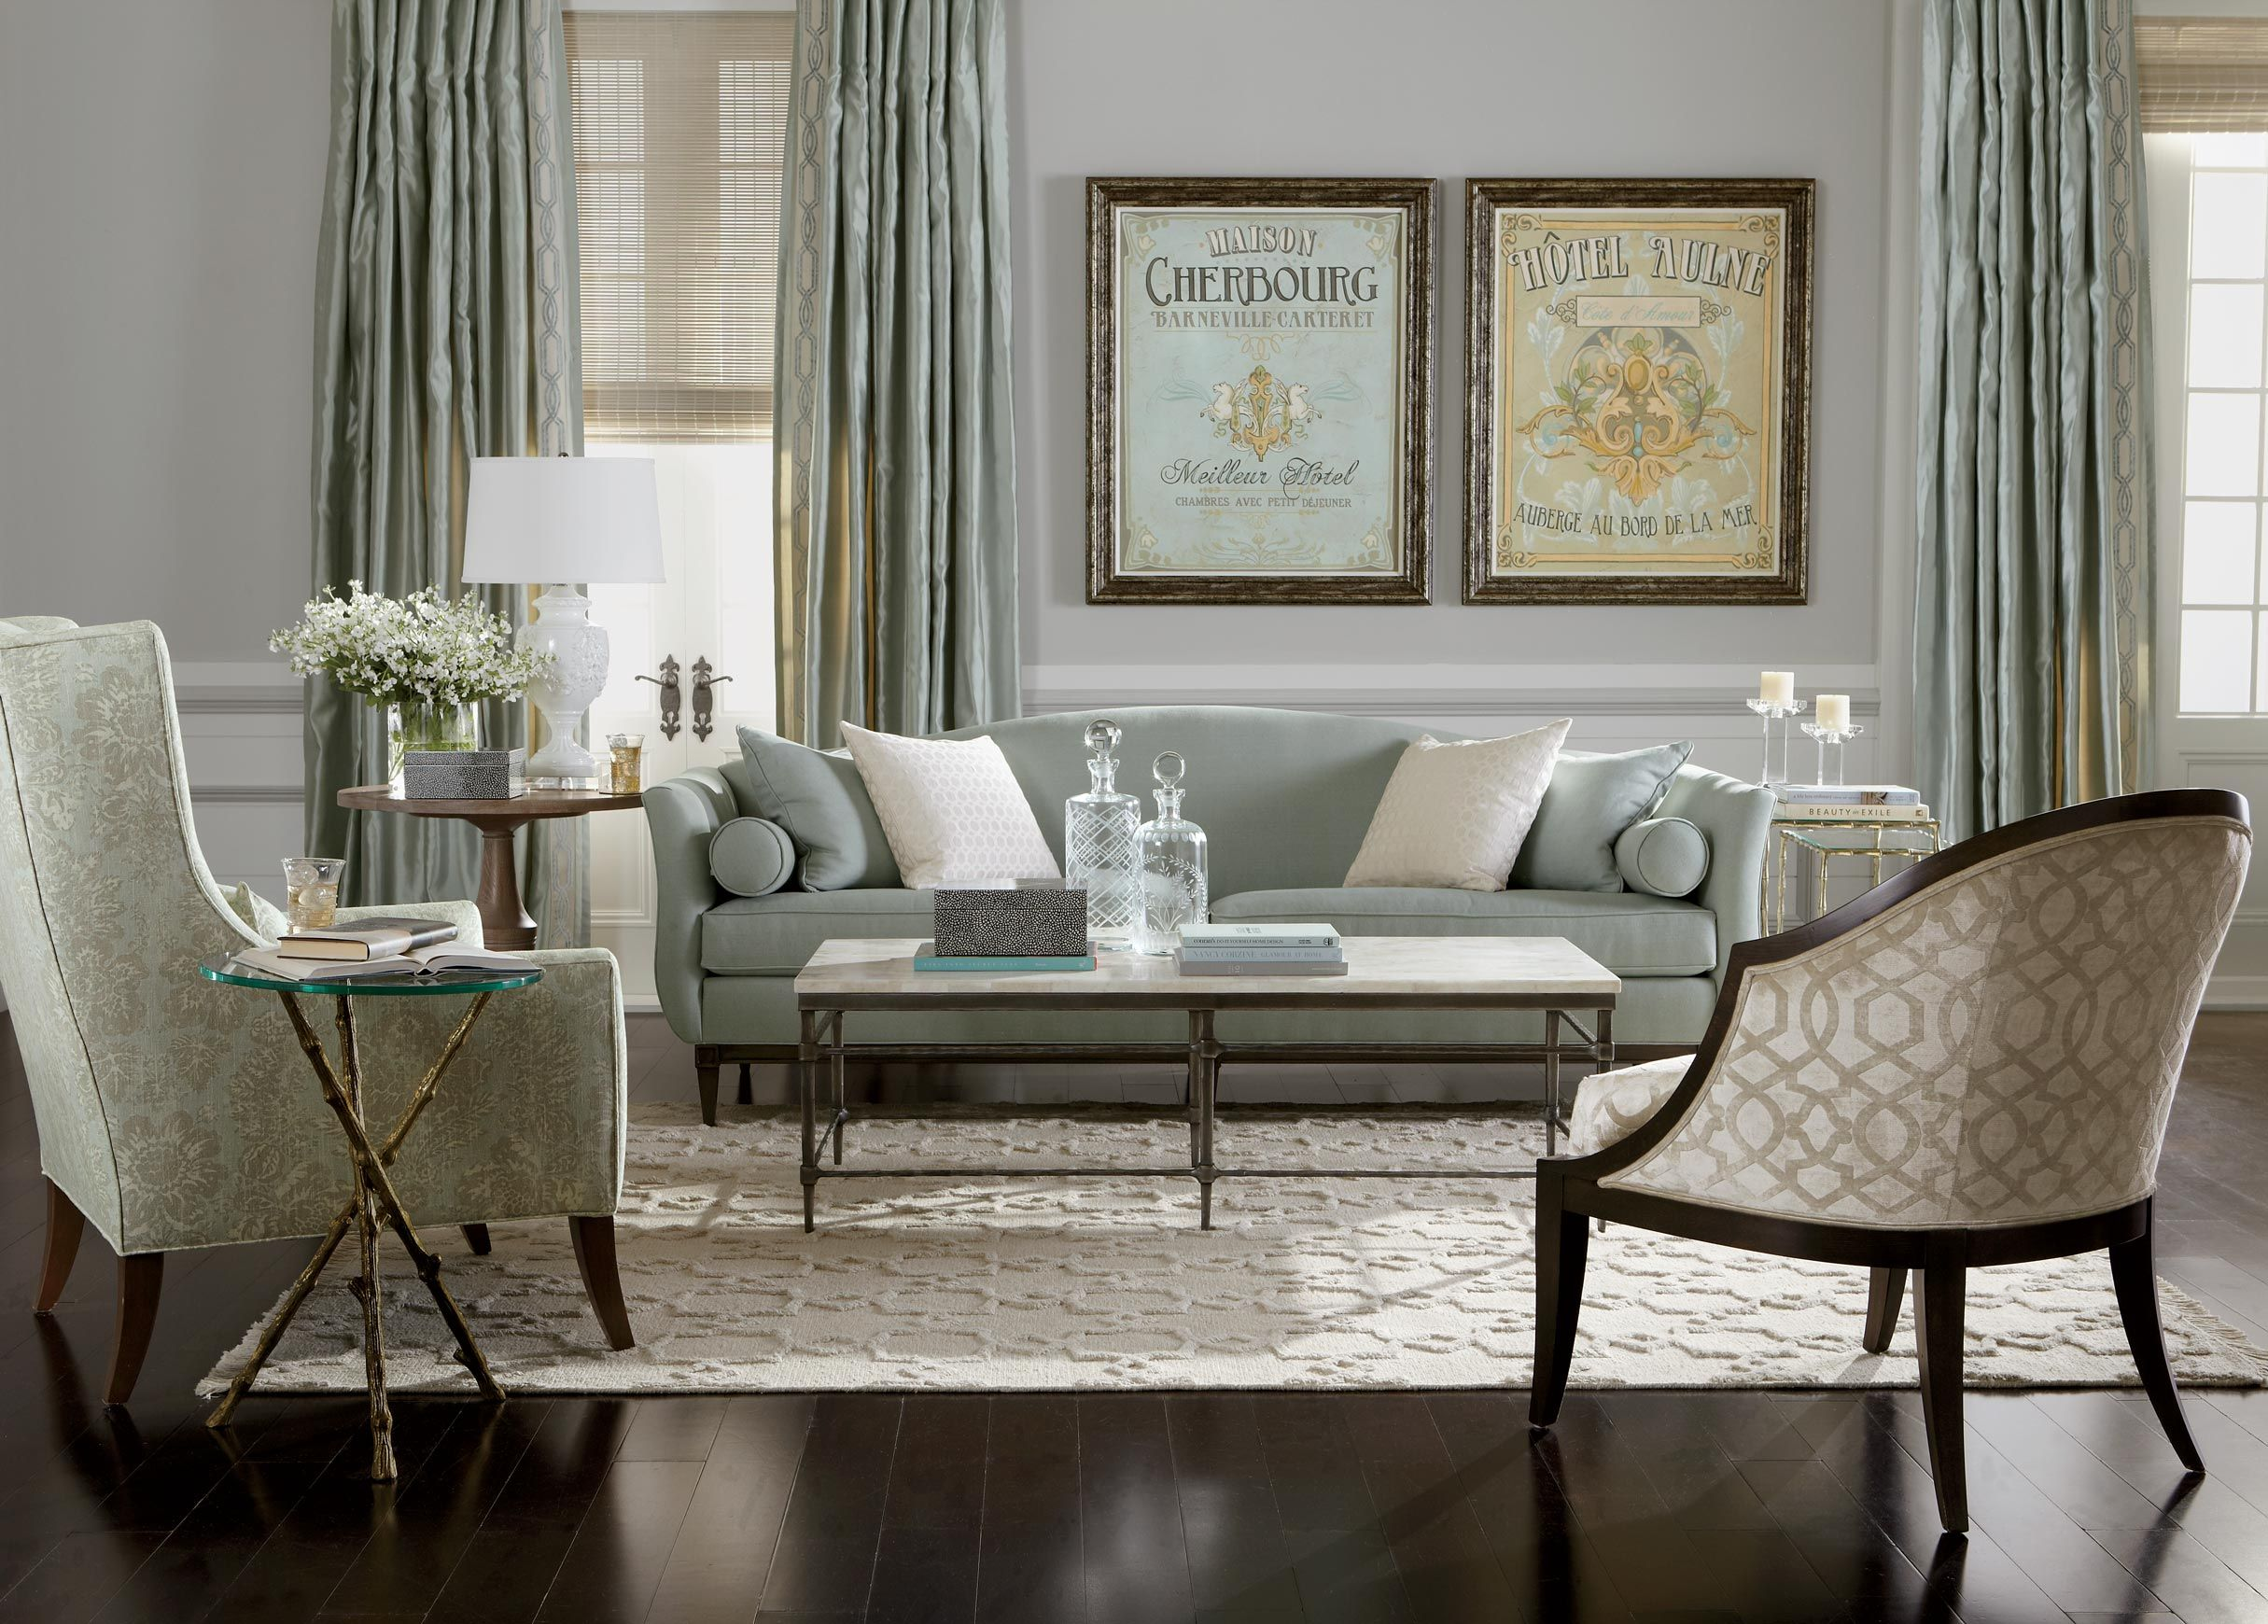 89 best ethan allen living rooms images on pinterest | ethan allen